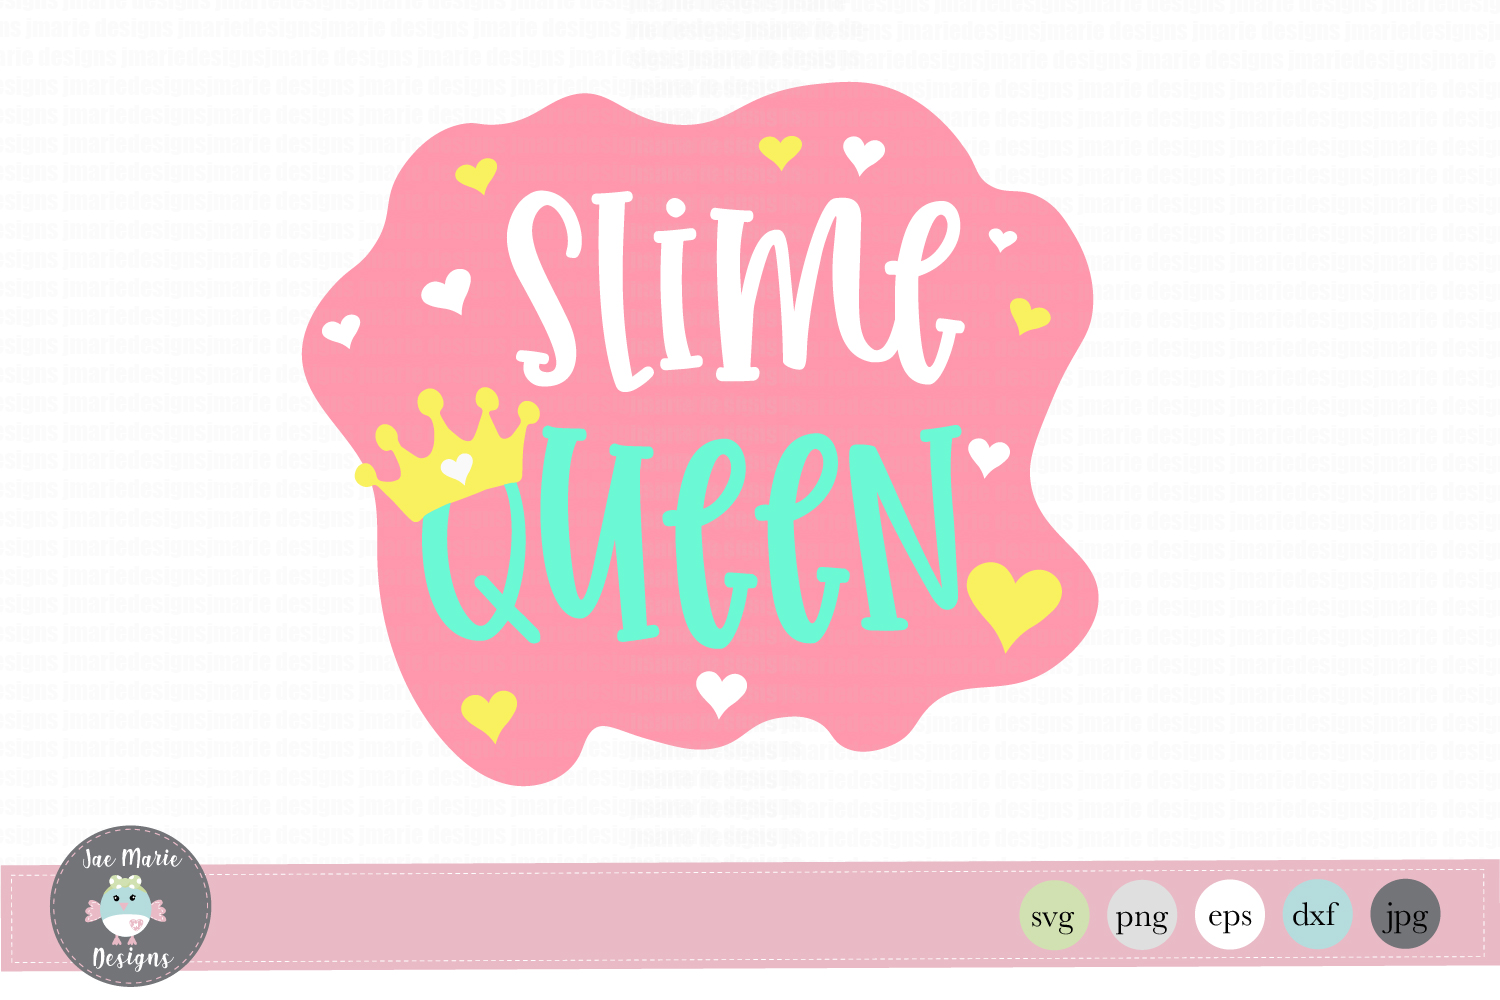 Download Free Slime Queen Birthday Graphic By Thejaemarie Creative Fabrica for Cricut Explore, Silhouette and other cutting machines.